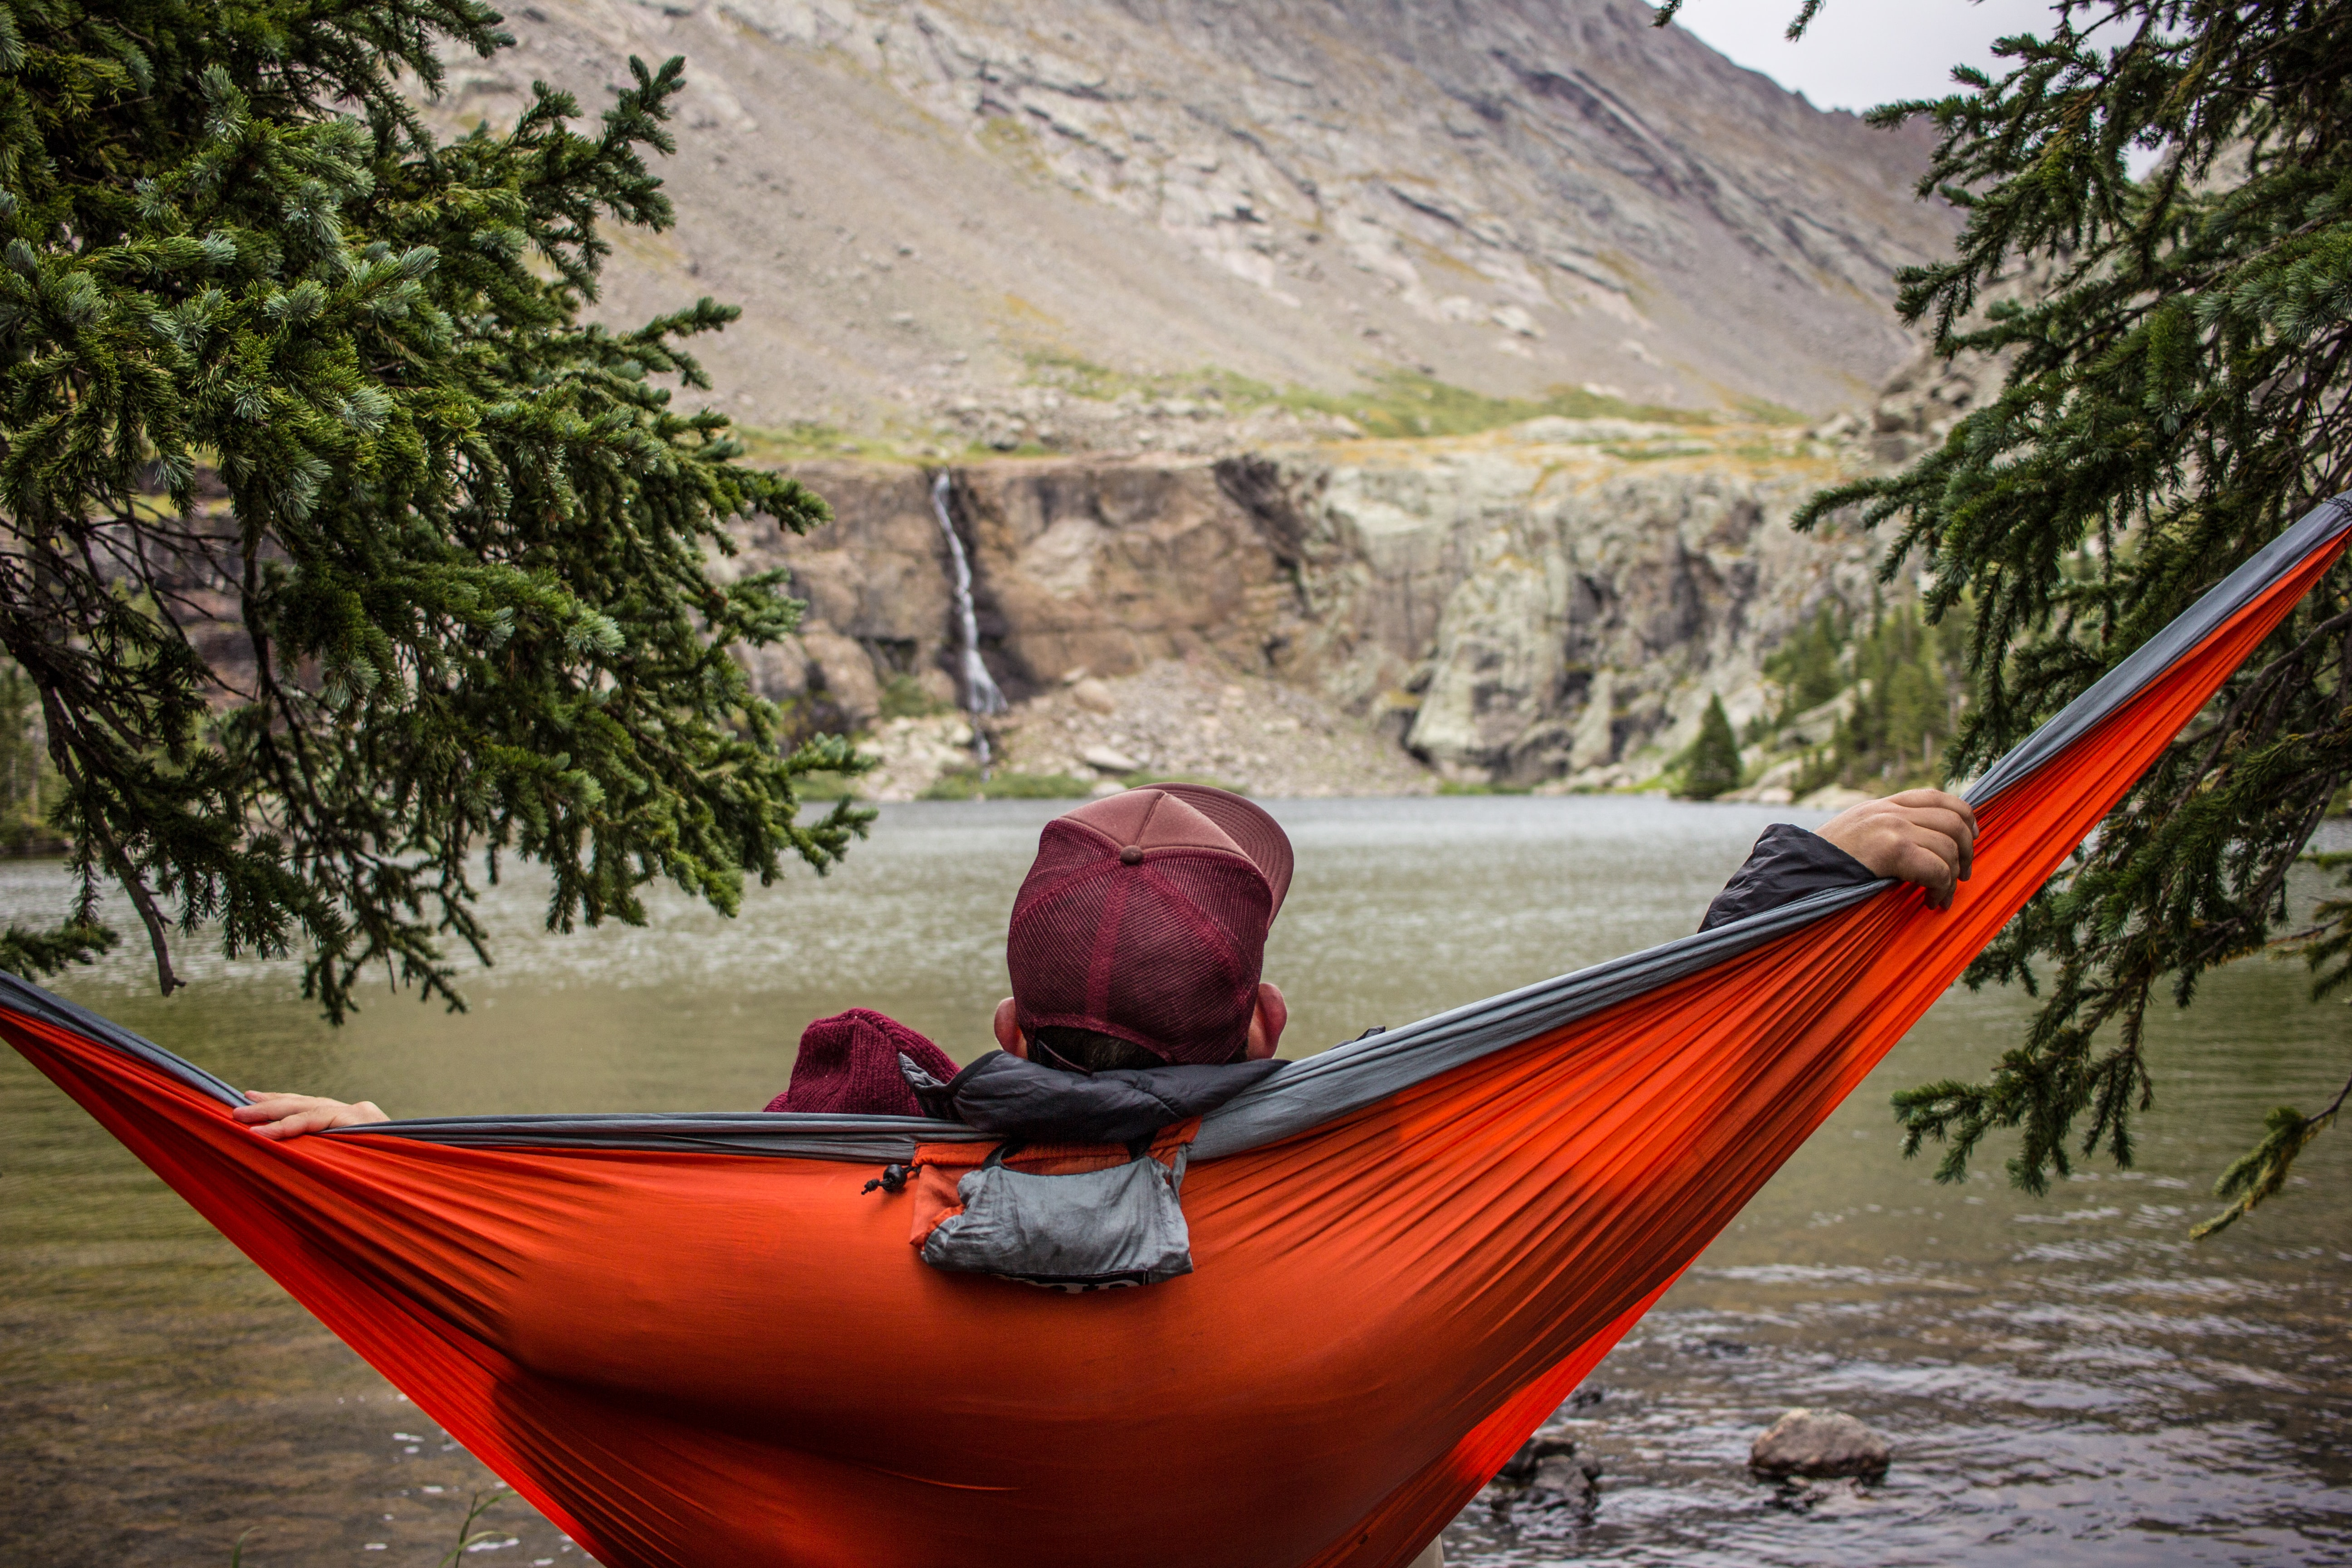 A man relaxes on a red hammock in the mountains by a lake